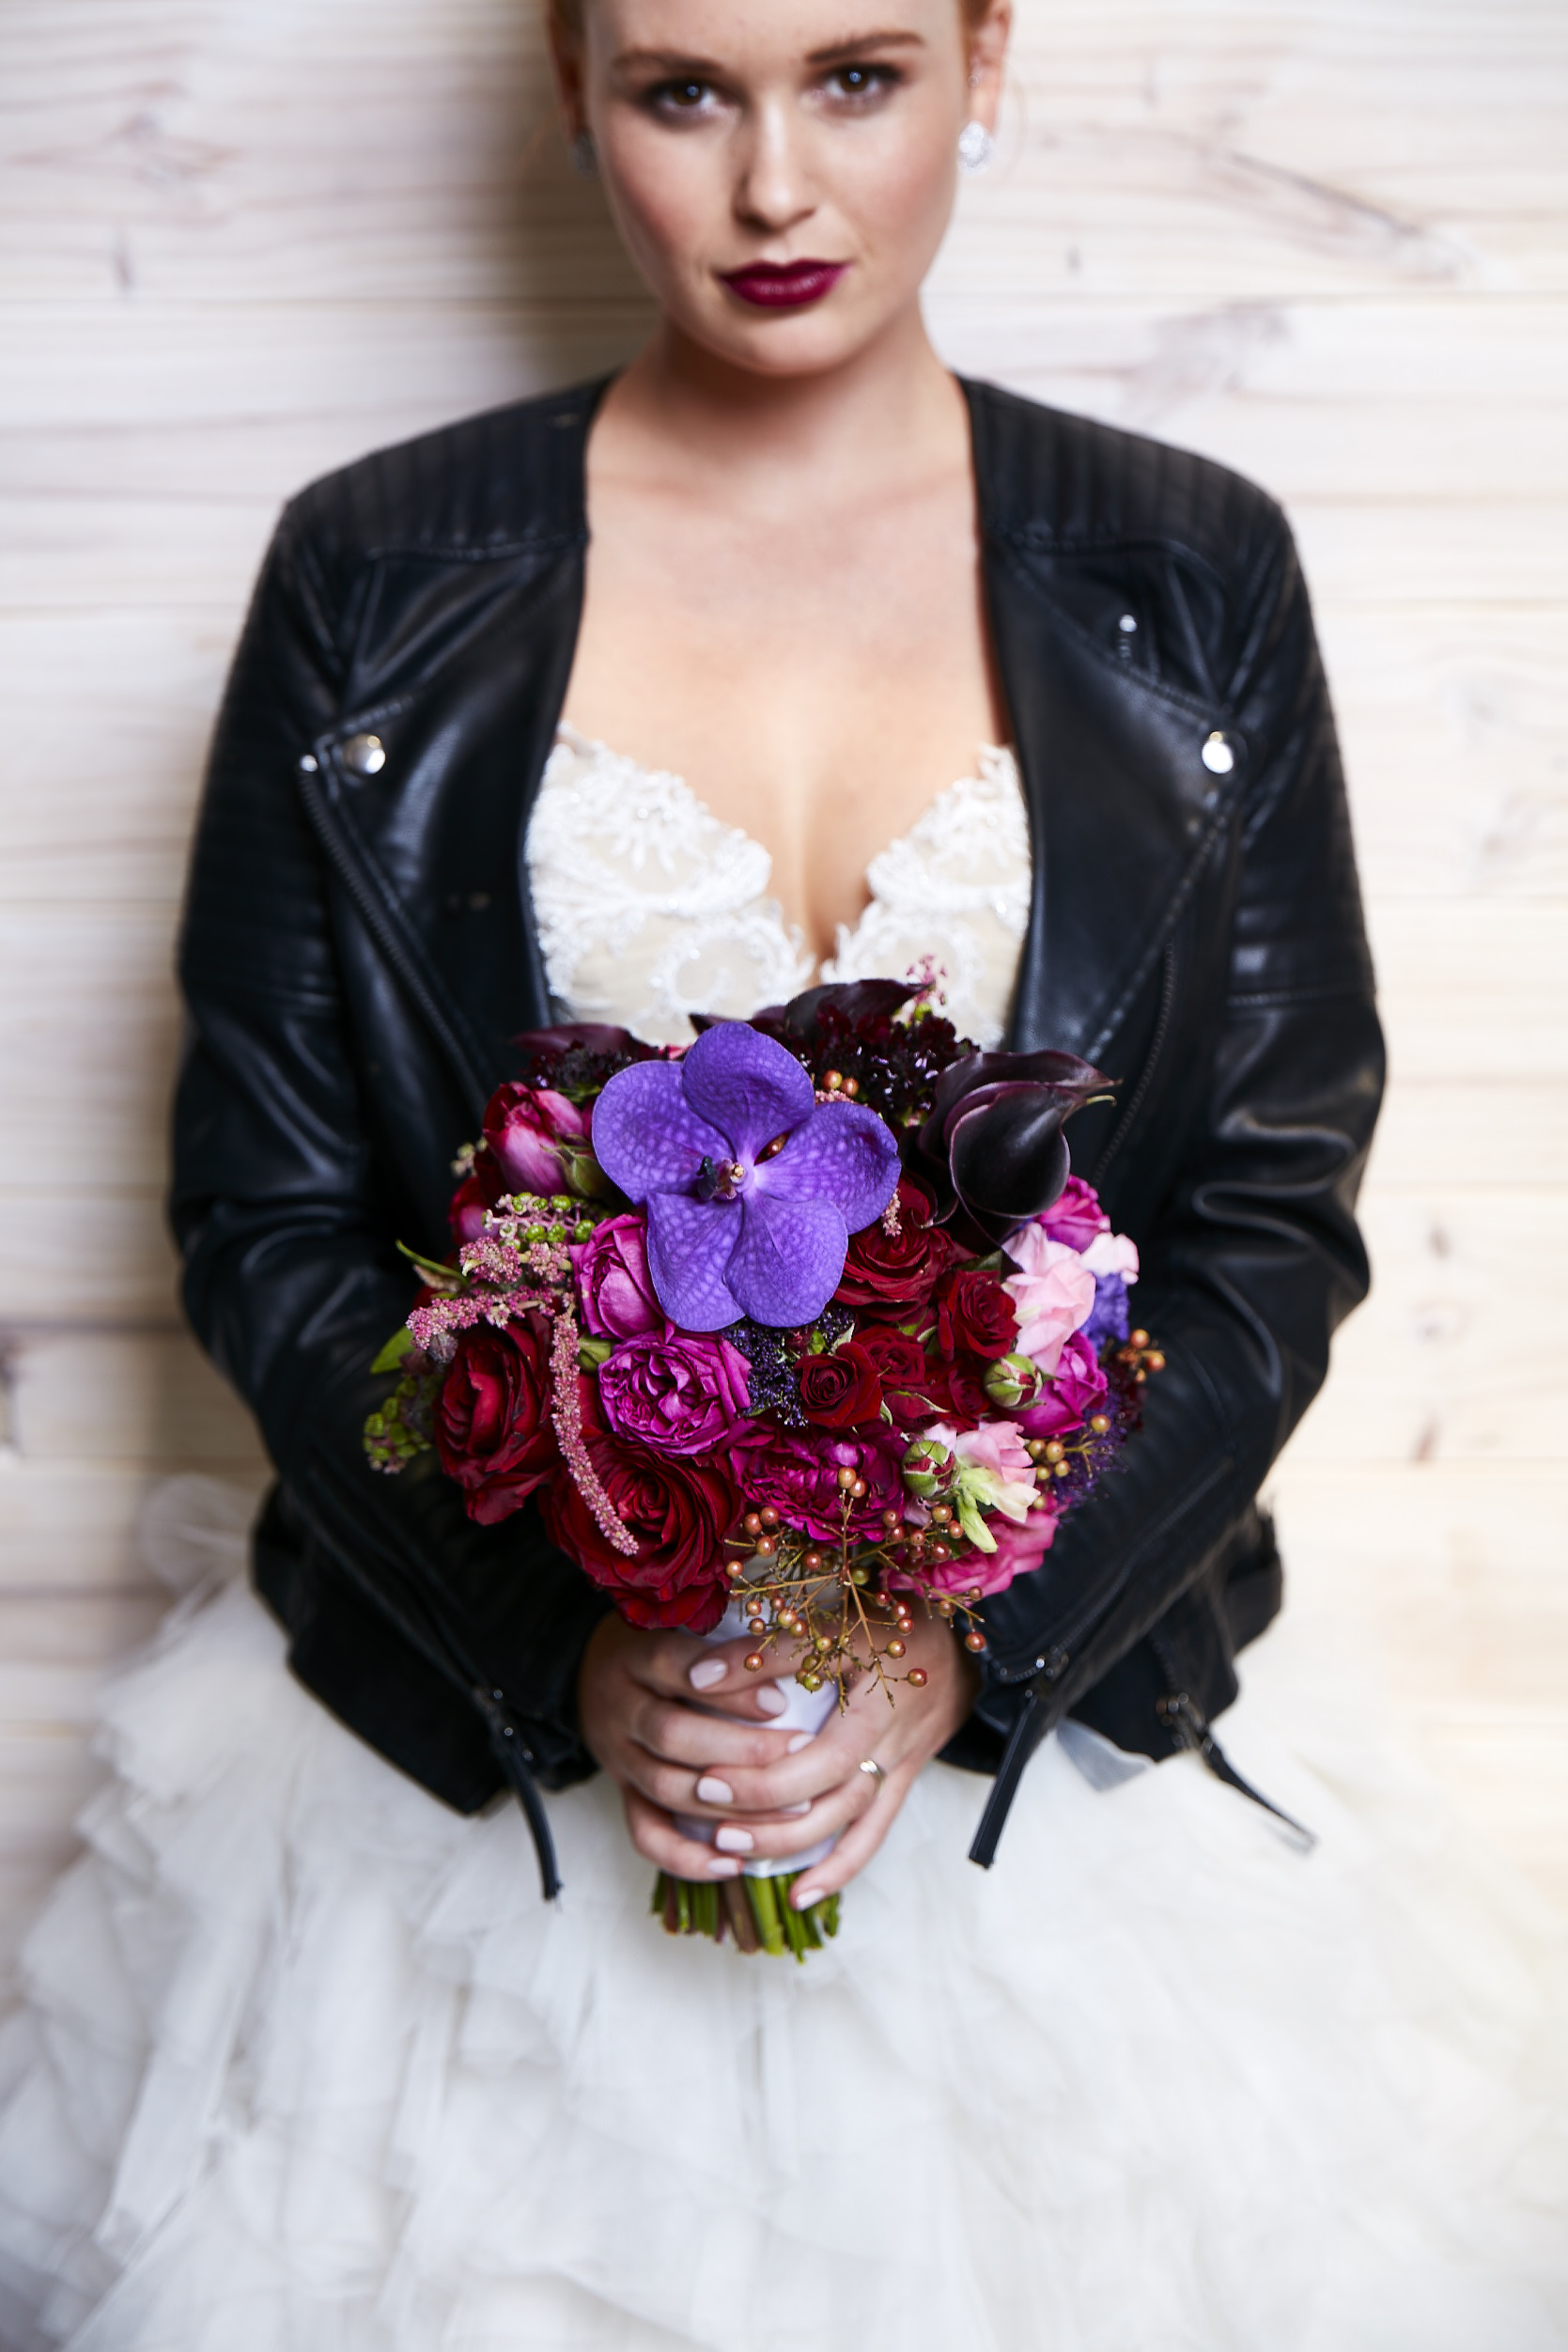 love, hope, flowers, lhflowers, wedding flowers, flowers, Sydney, Sydney florist, ovolo hotel, dark wedding bouquet, winter wedding, dark flowers, plum coloured flowers, bride, leather jacket, wedding dress